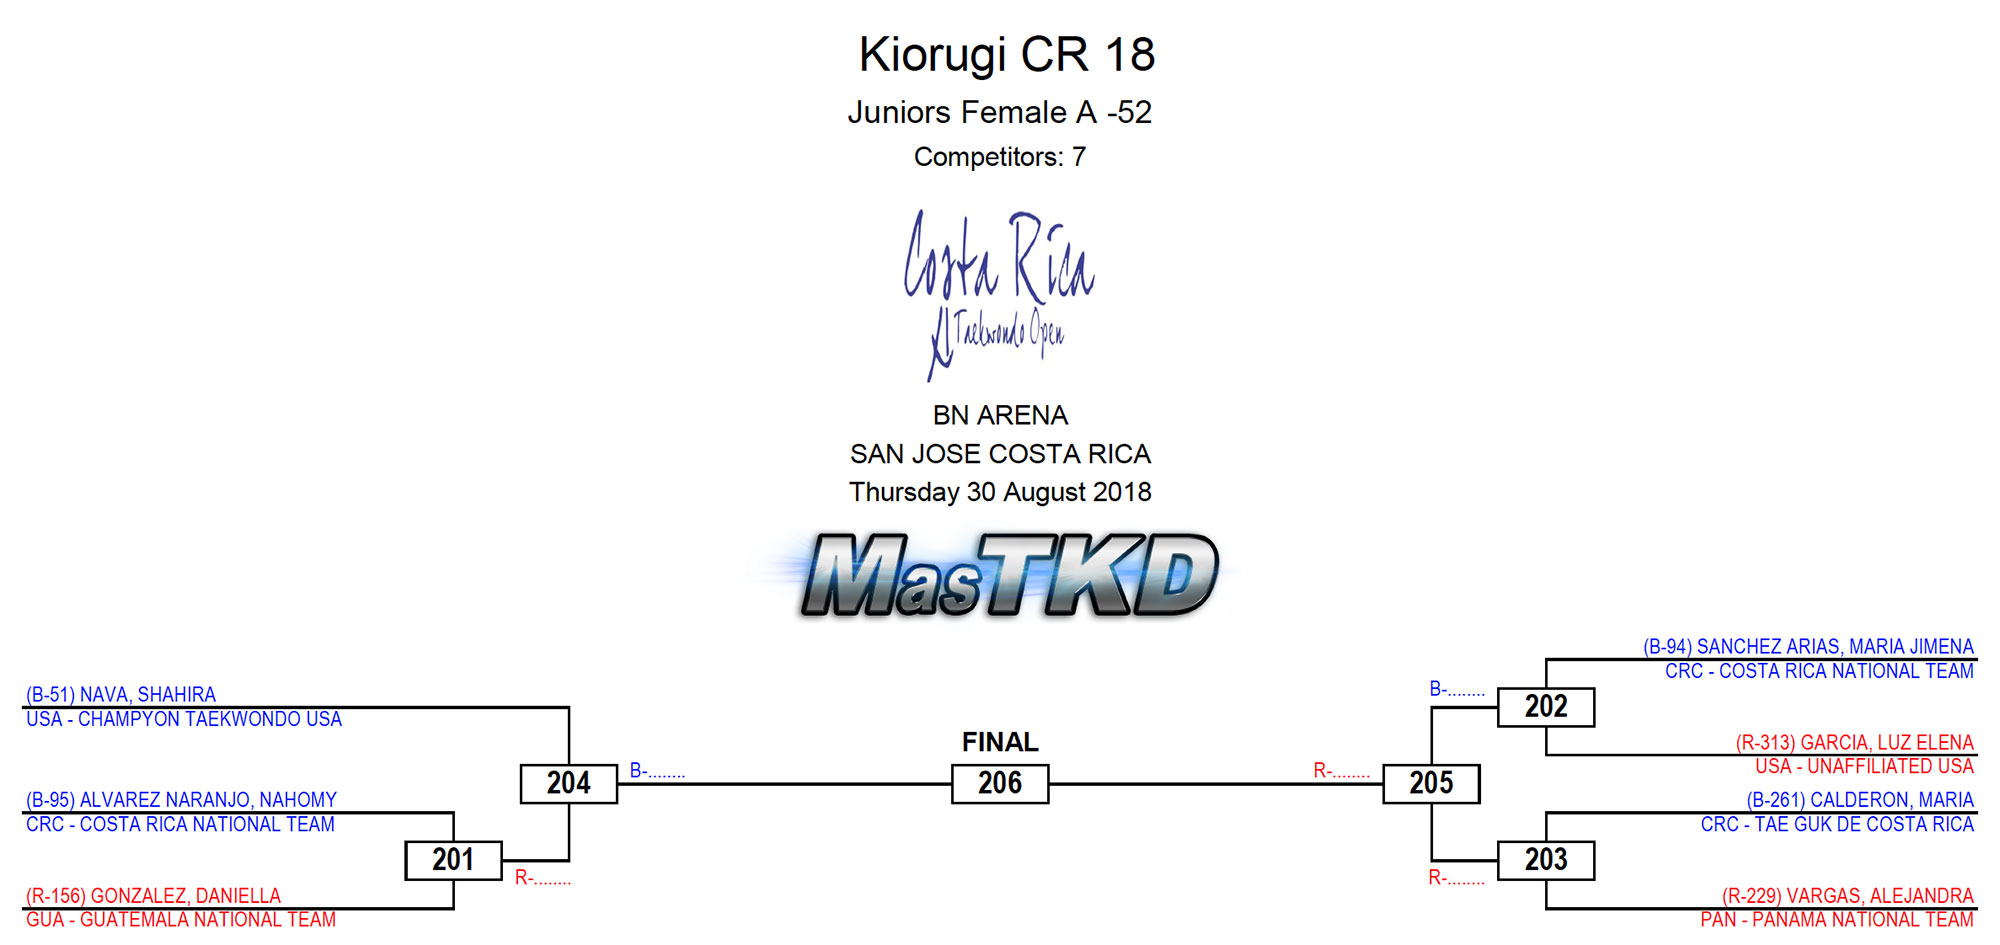 CostaRicaOpen-JUNIOR_Grafica_F-52